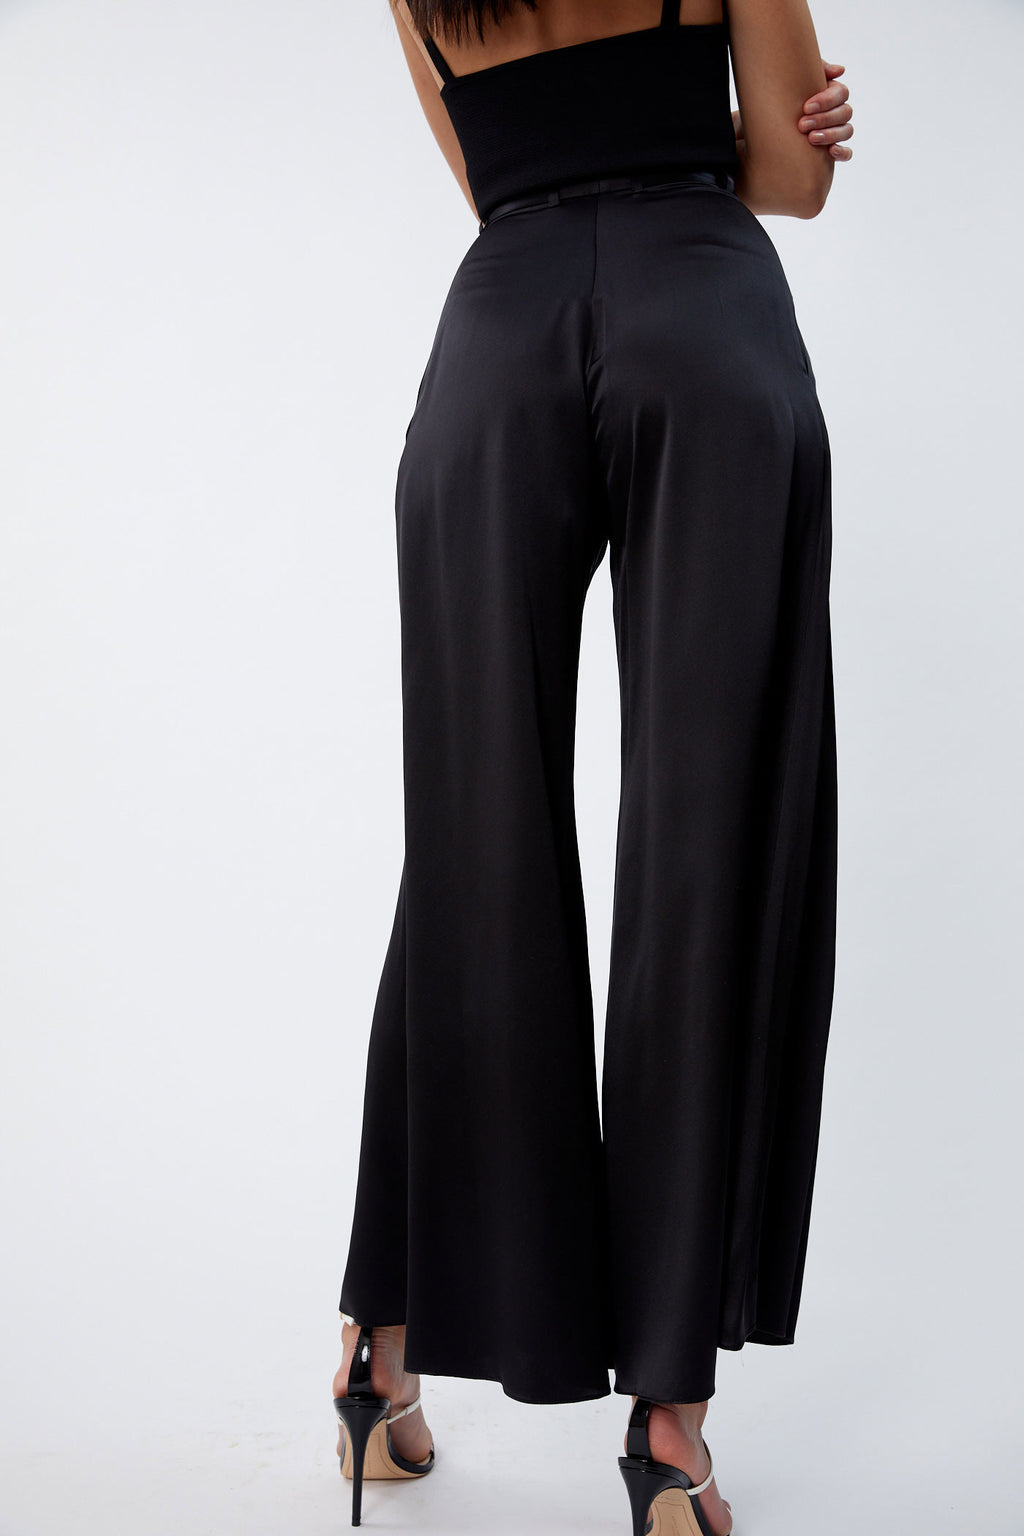 Silk Wide leg black pants